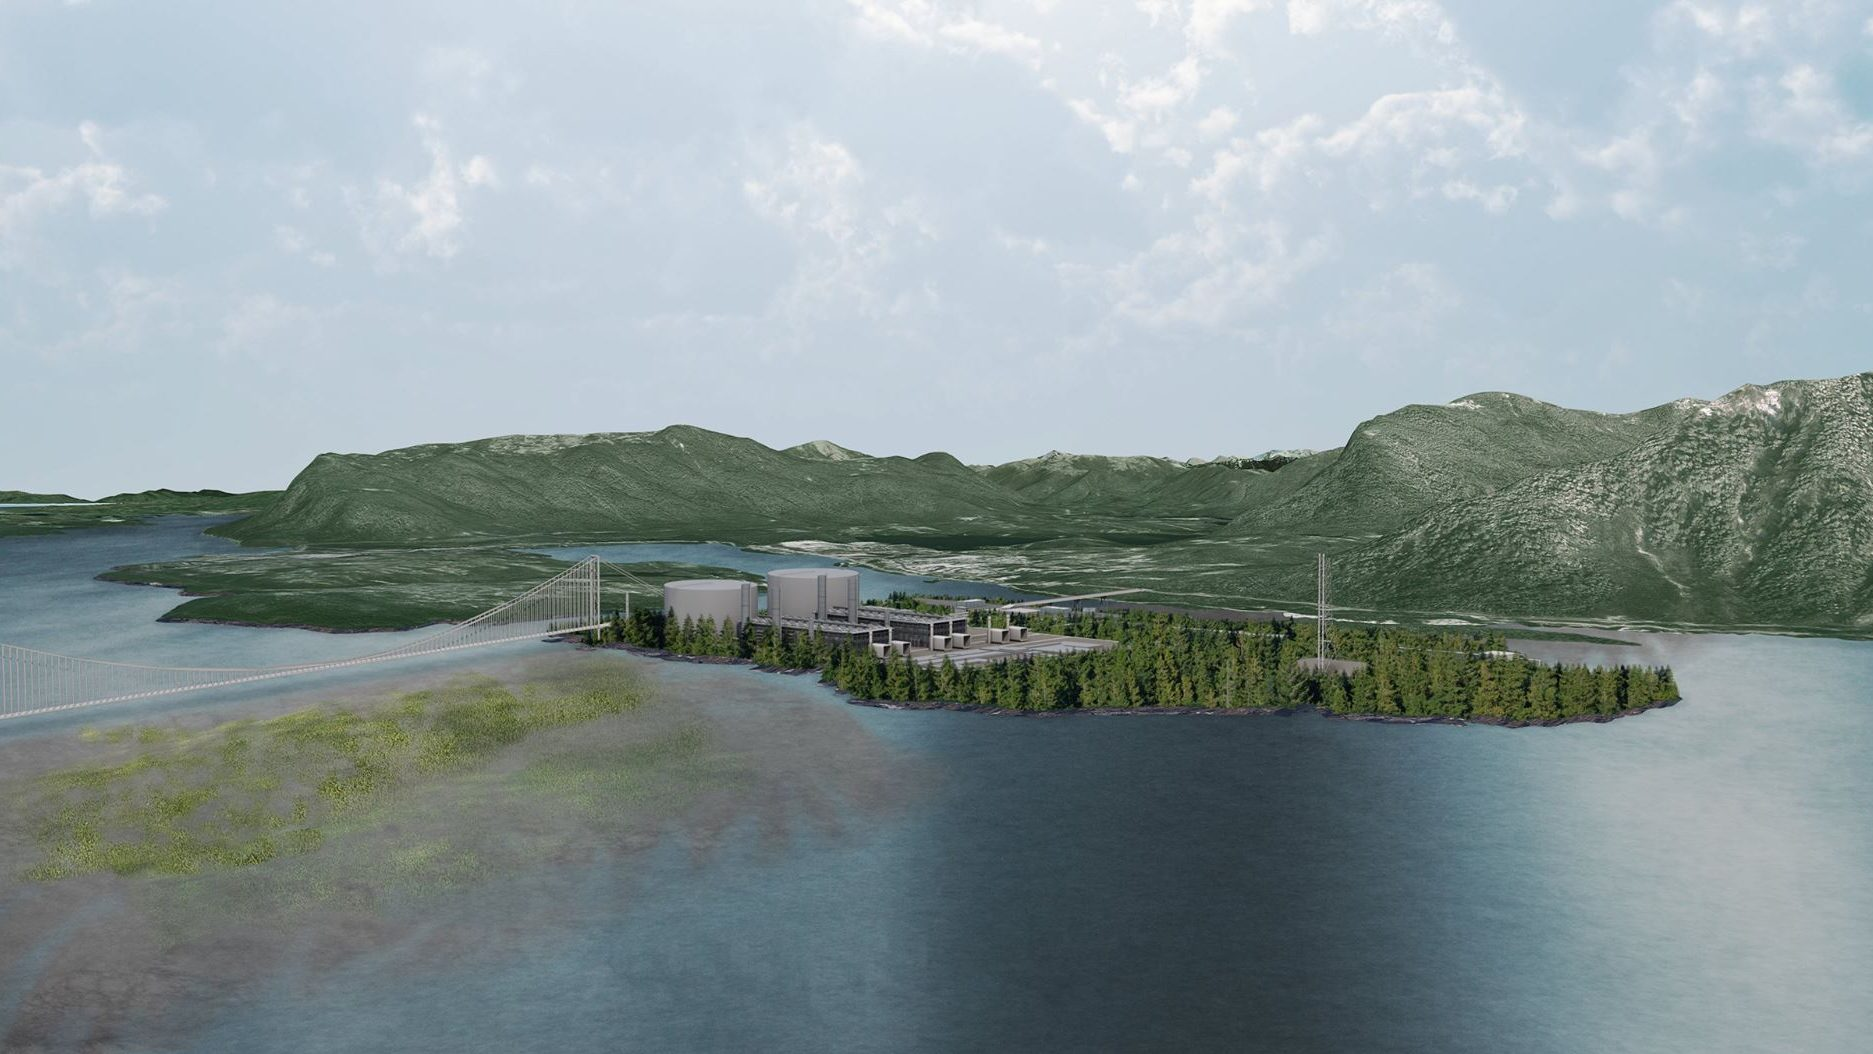 Pacific Northwest LNG megaproject not going ahead